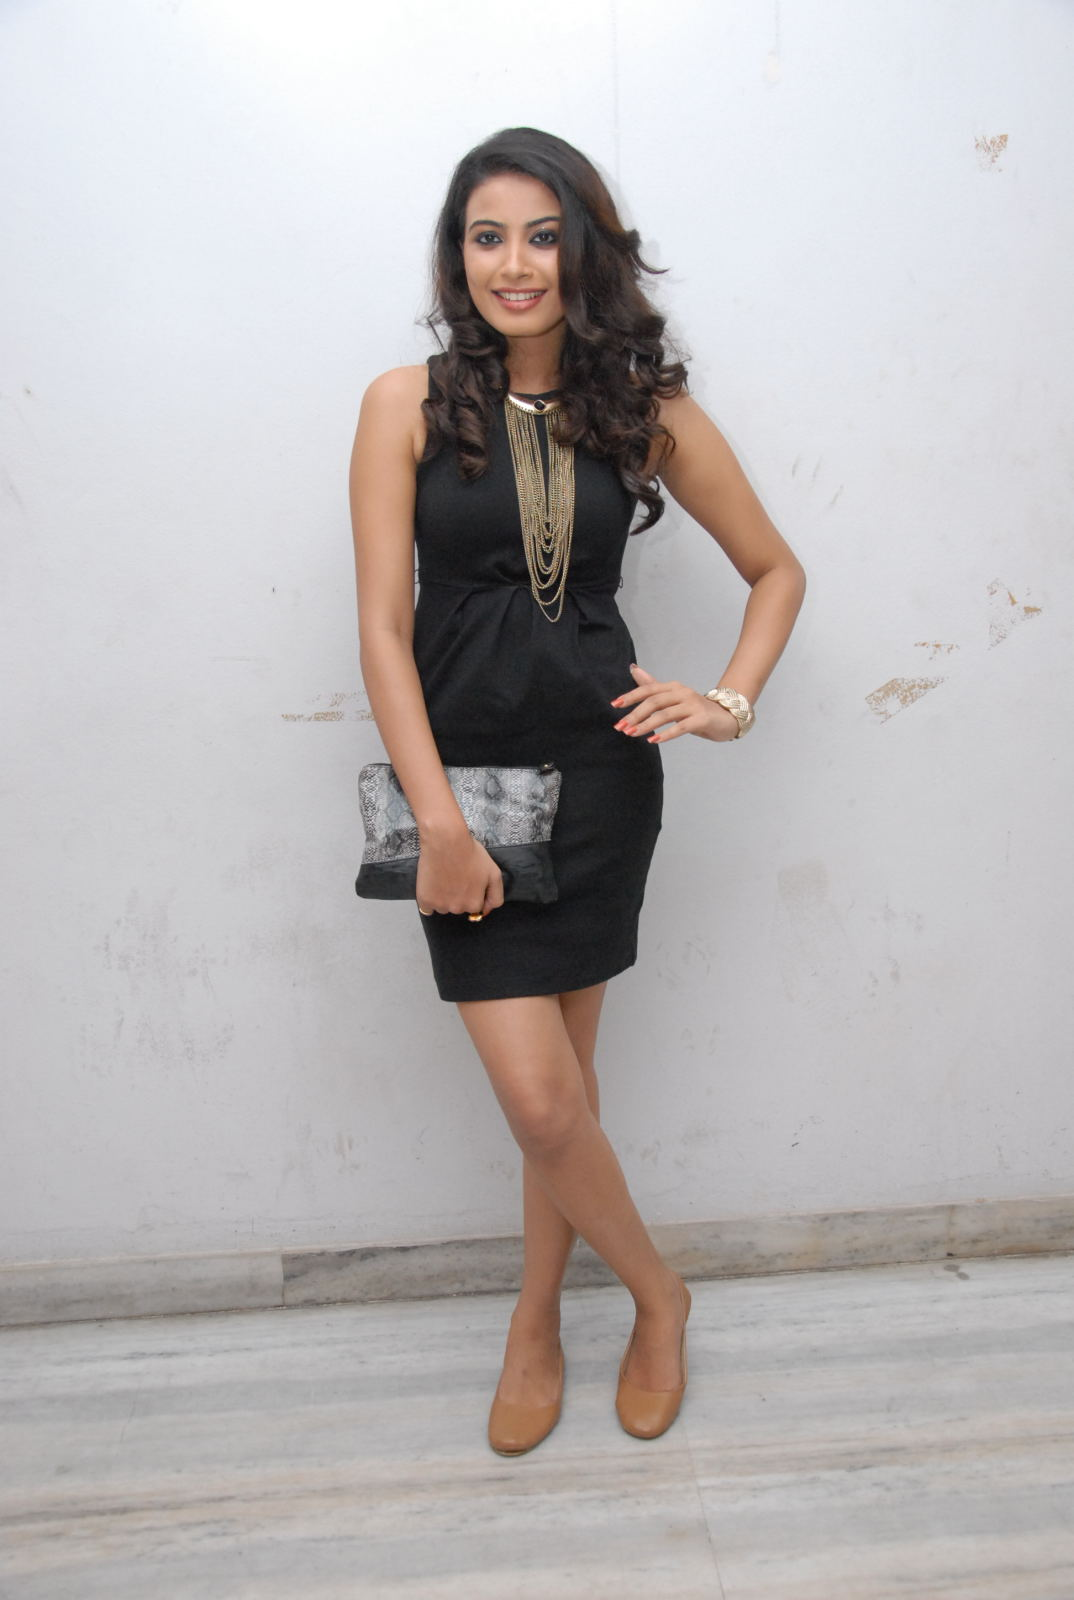 Kavya Shetty hot and cute pics